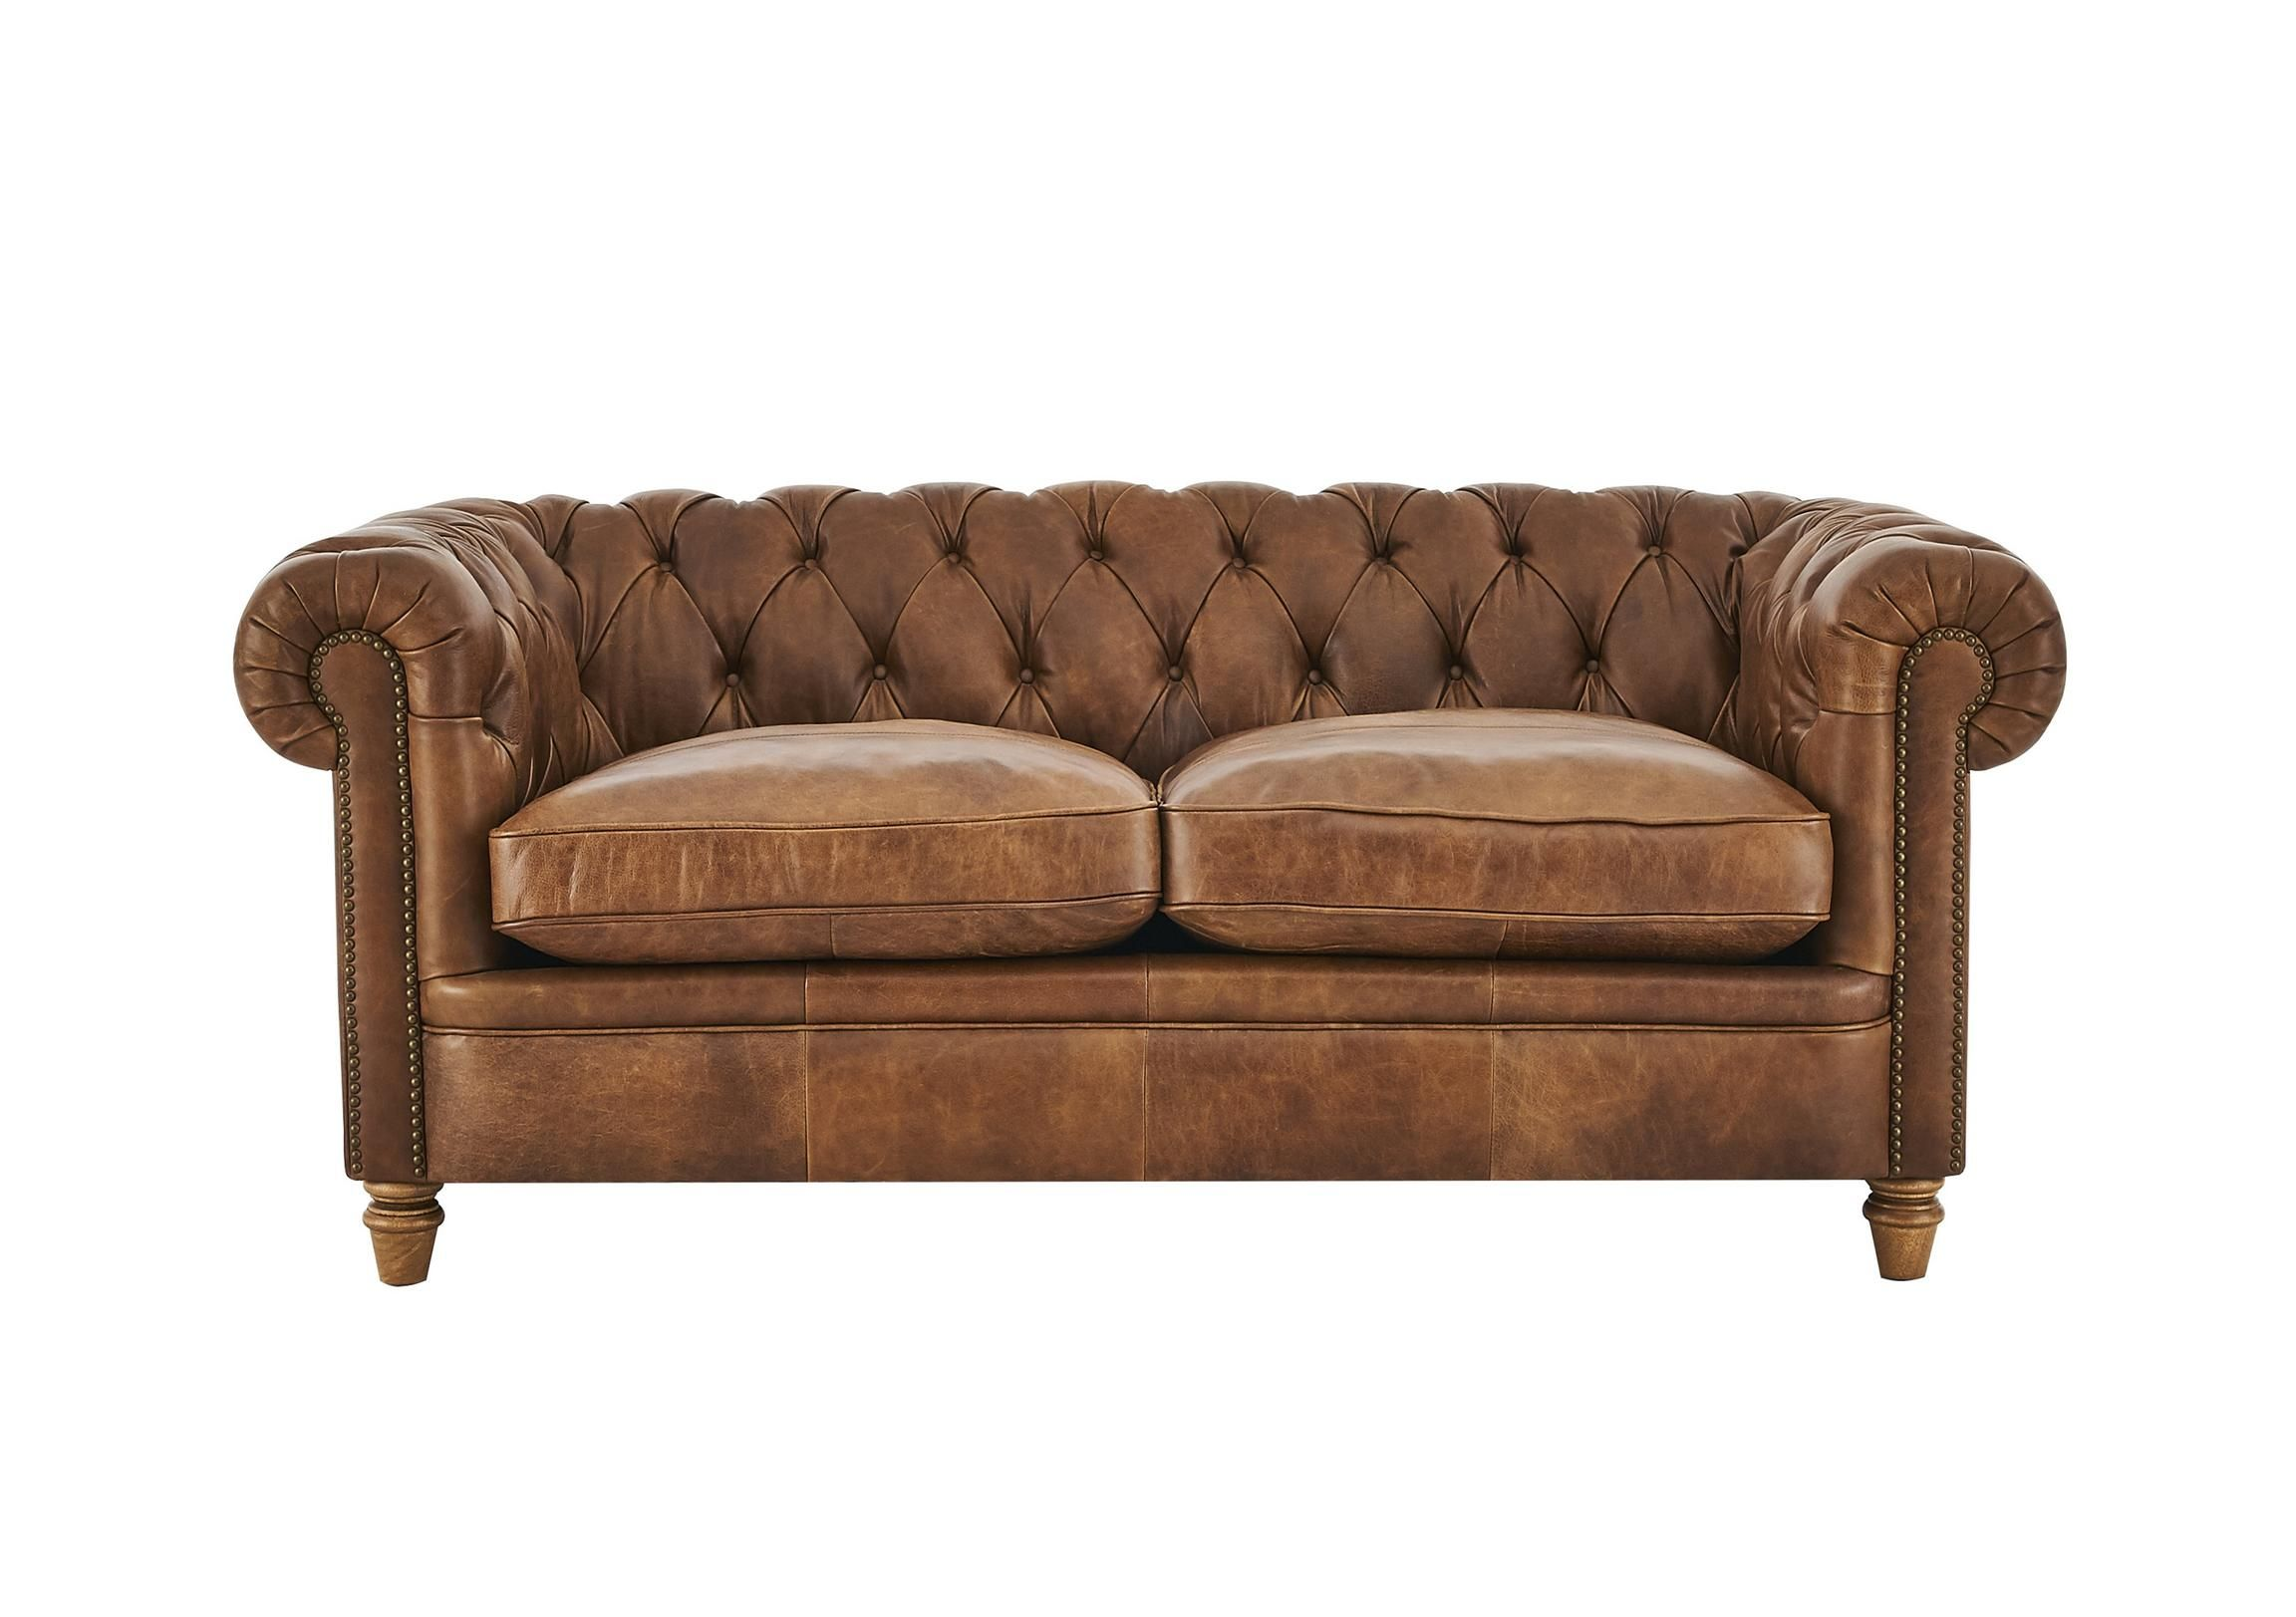 Discover The New England Newport 2 Seater Leather Sofa It Offers An Iconic Chesterfield Style